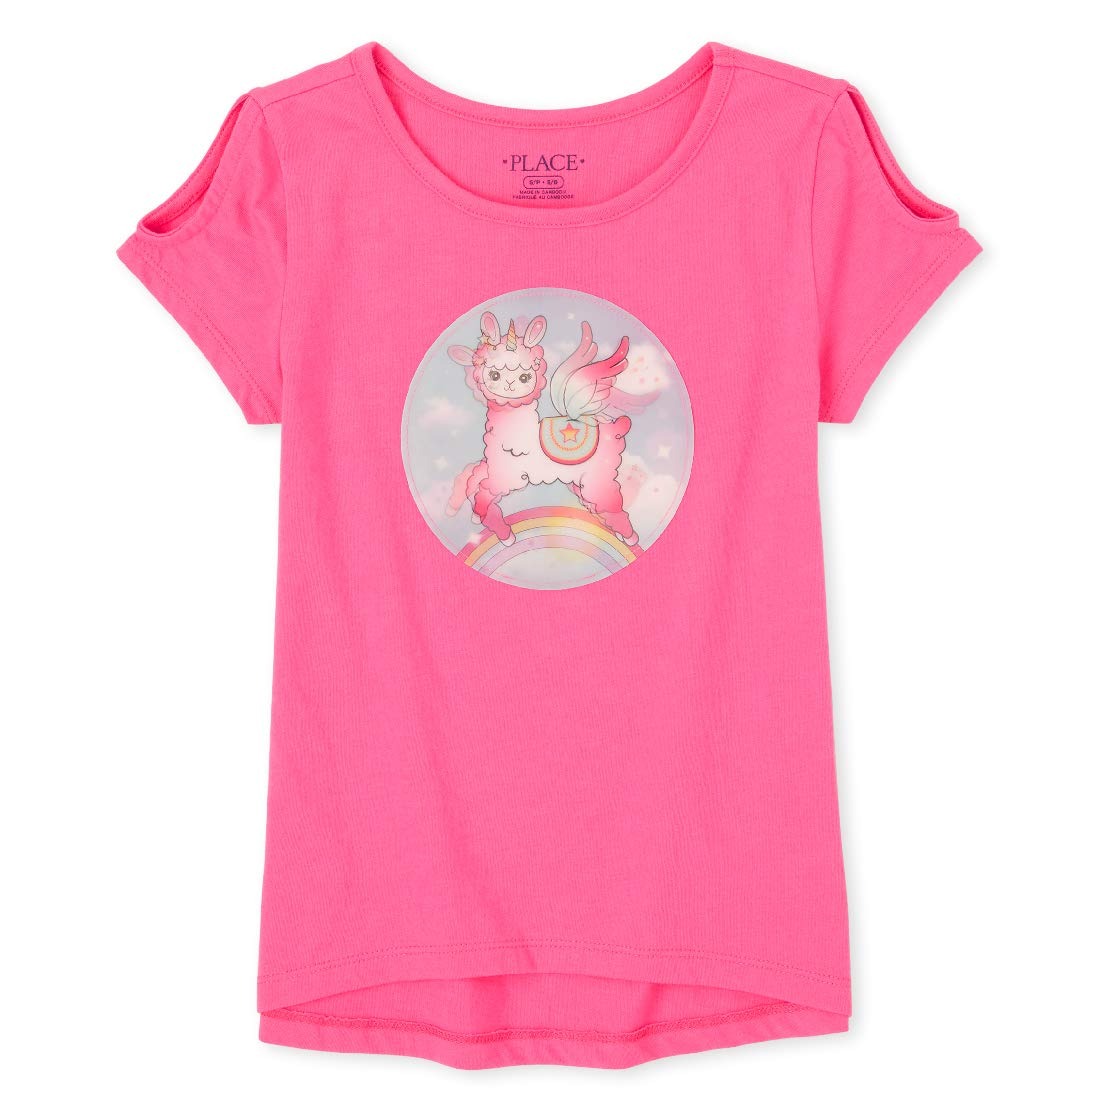 The Children's Place Girls' Cold Shoulder Graphic Top